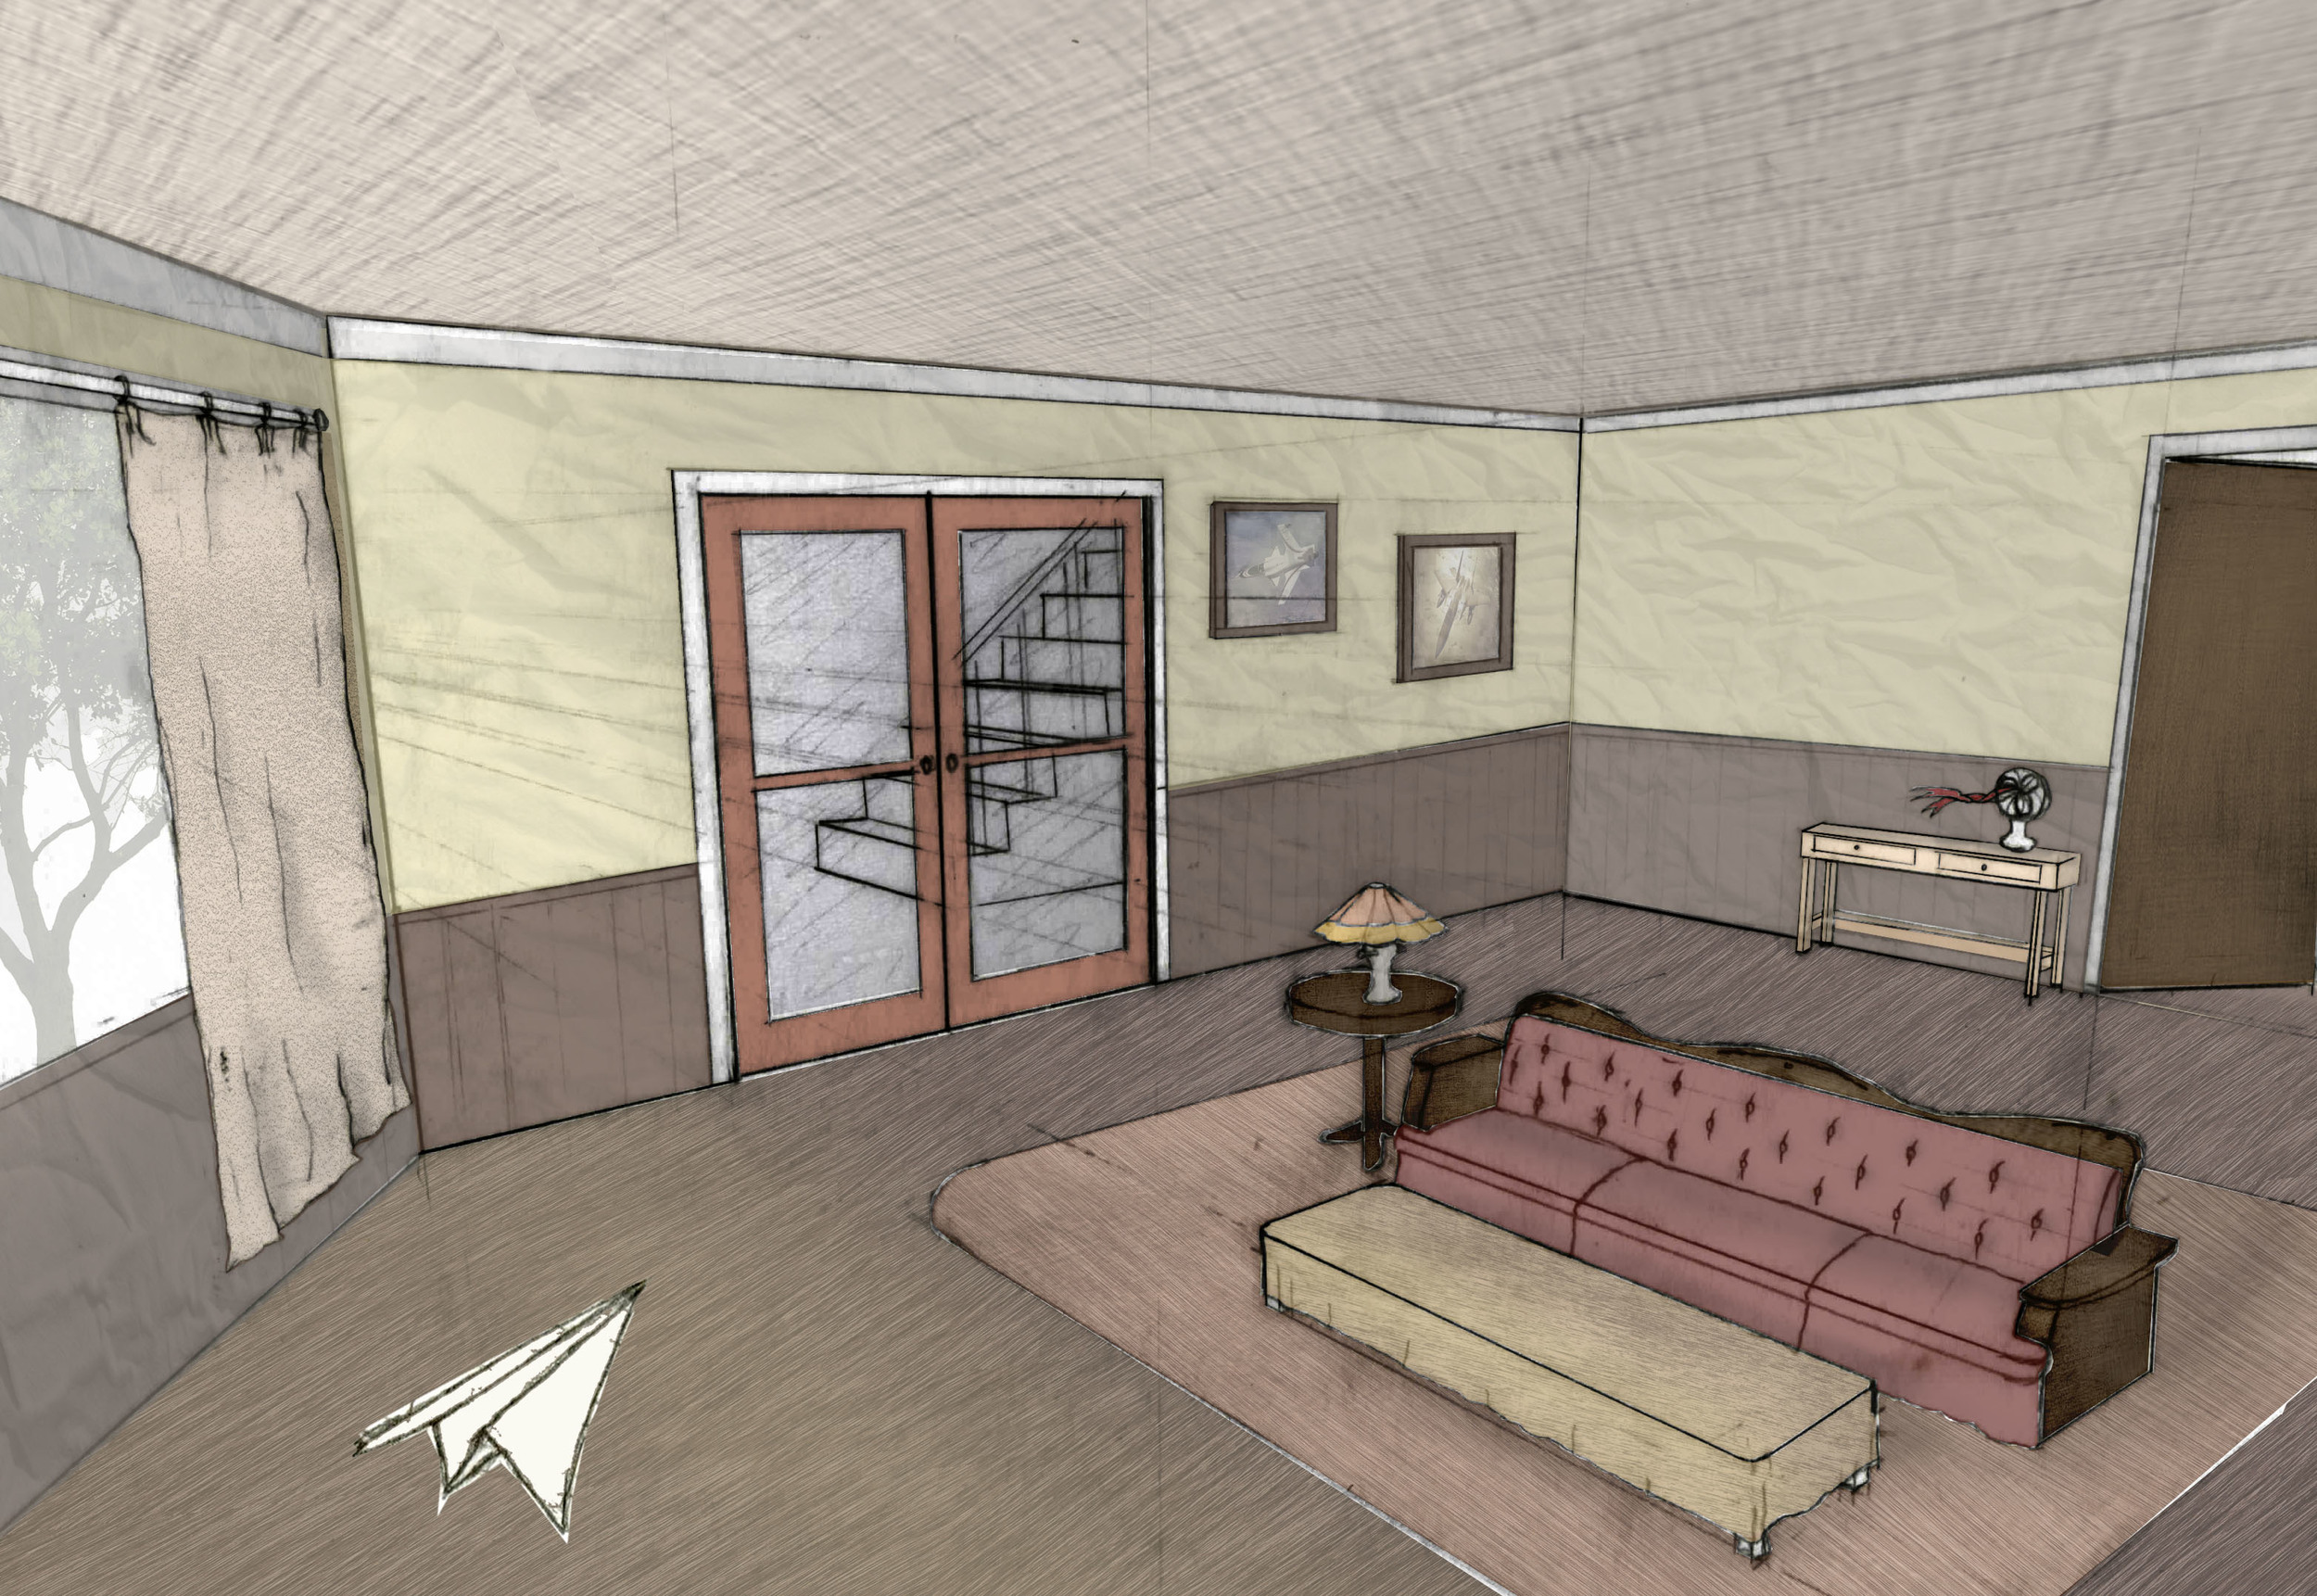 Rough Concept Art of The Living Room